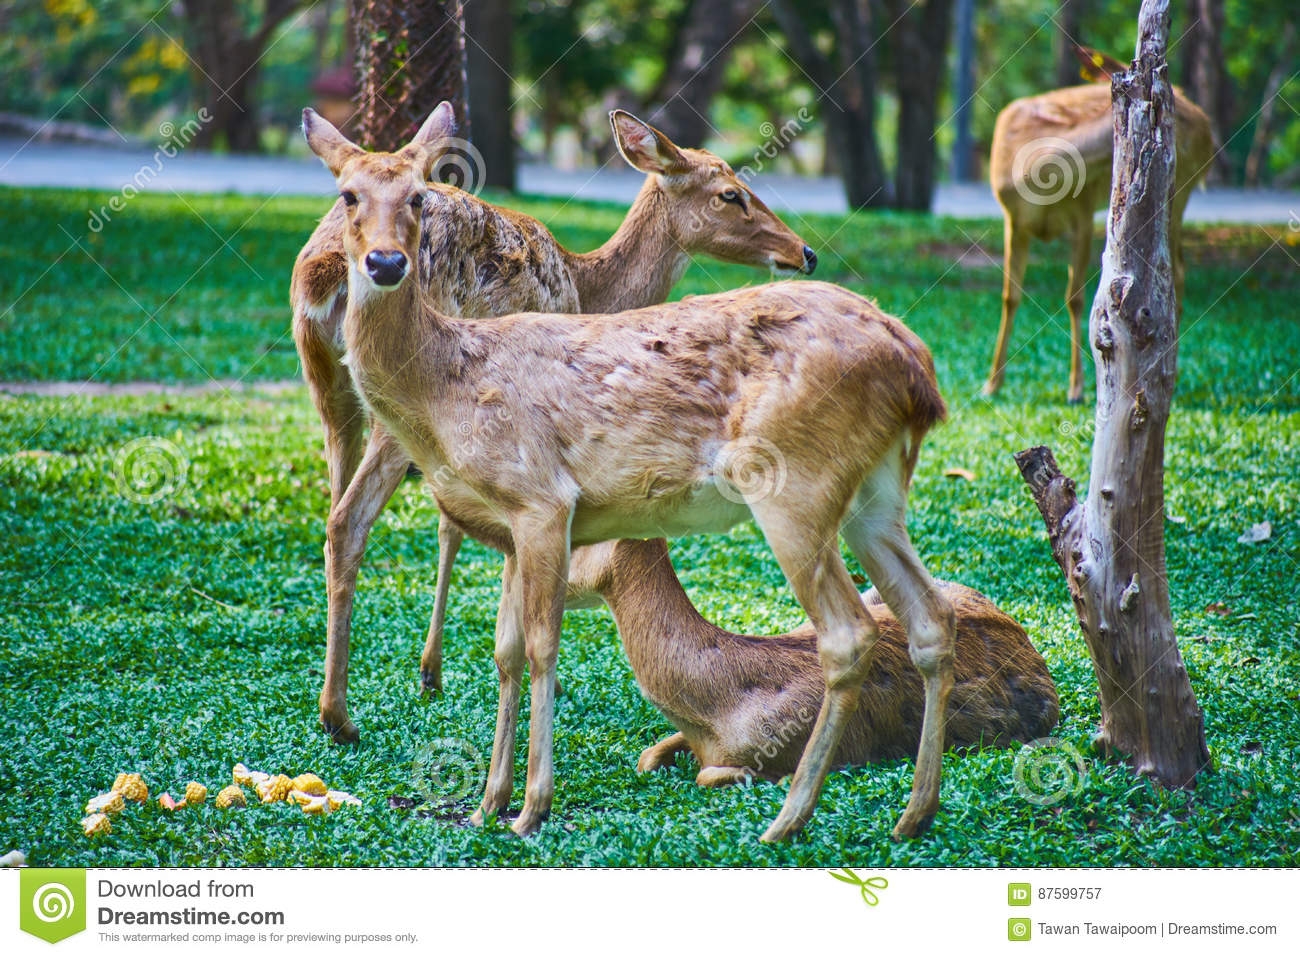 Dit beeld is over Thaise antilope, Bangkok Thailand